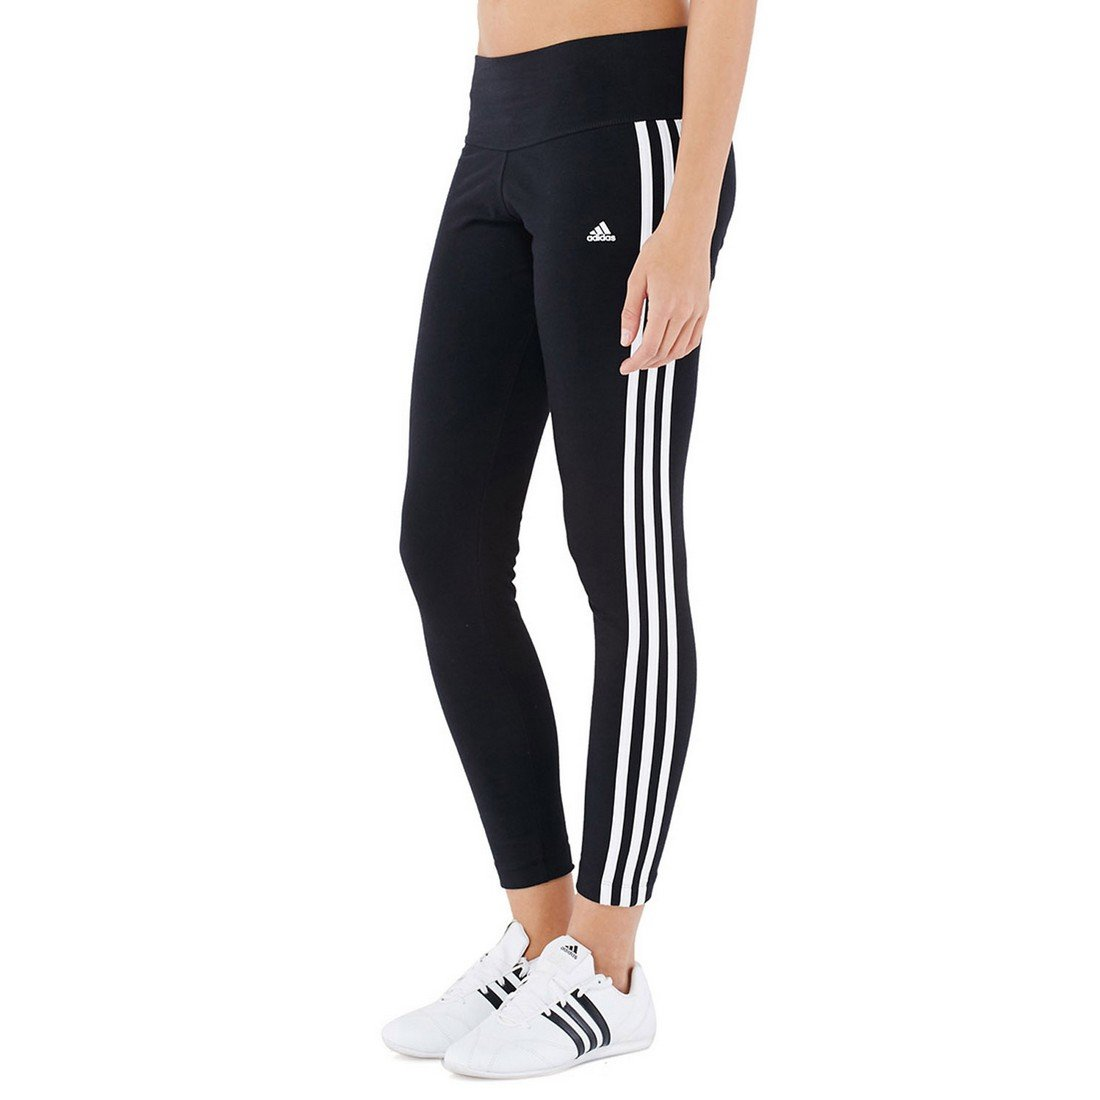 pantaloni adidas leggings